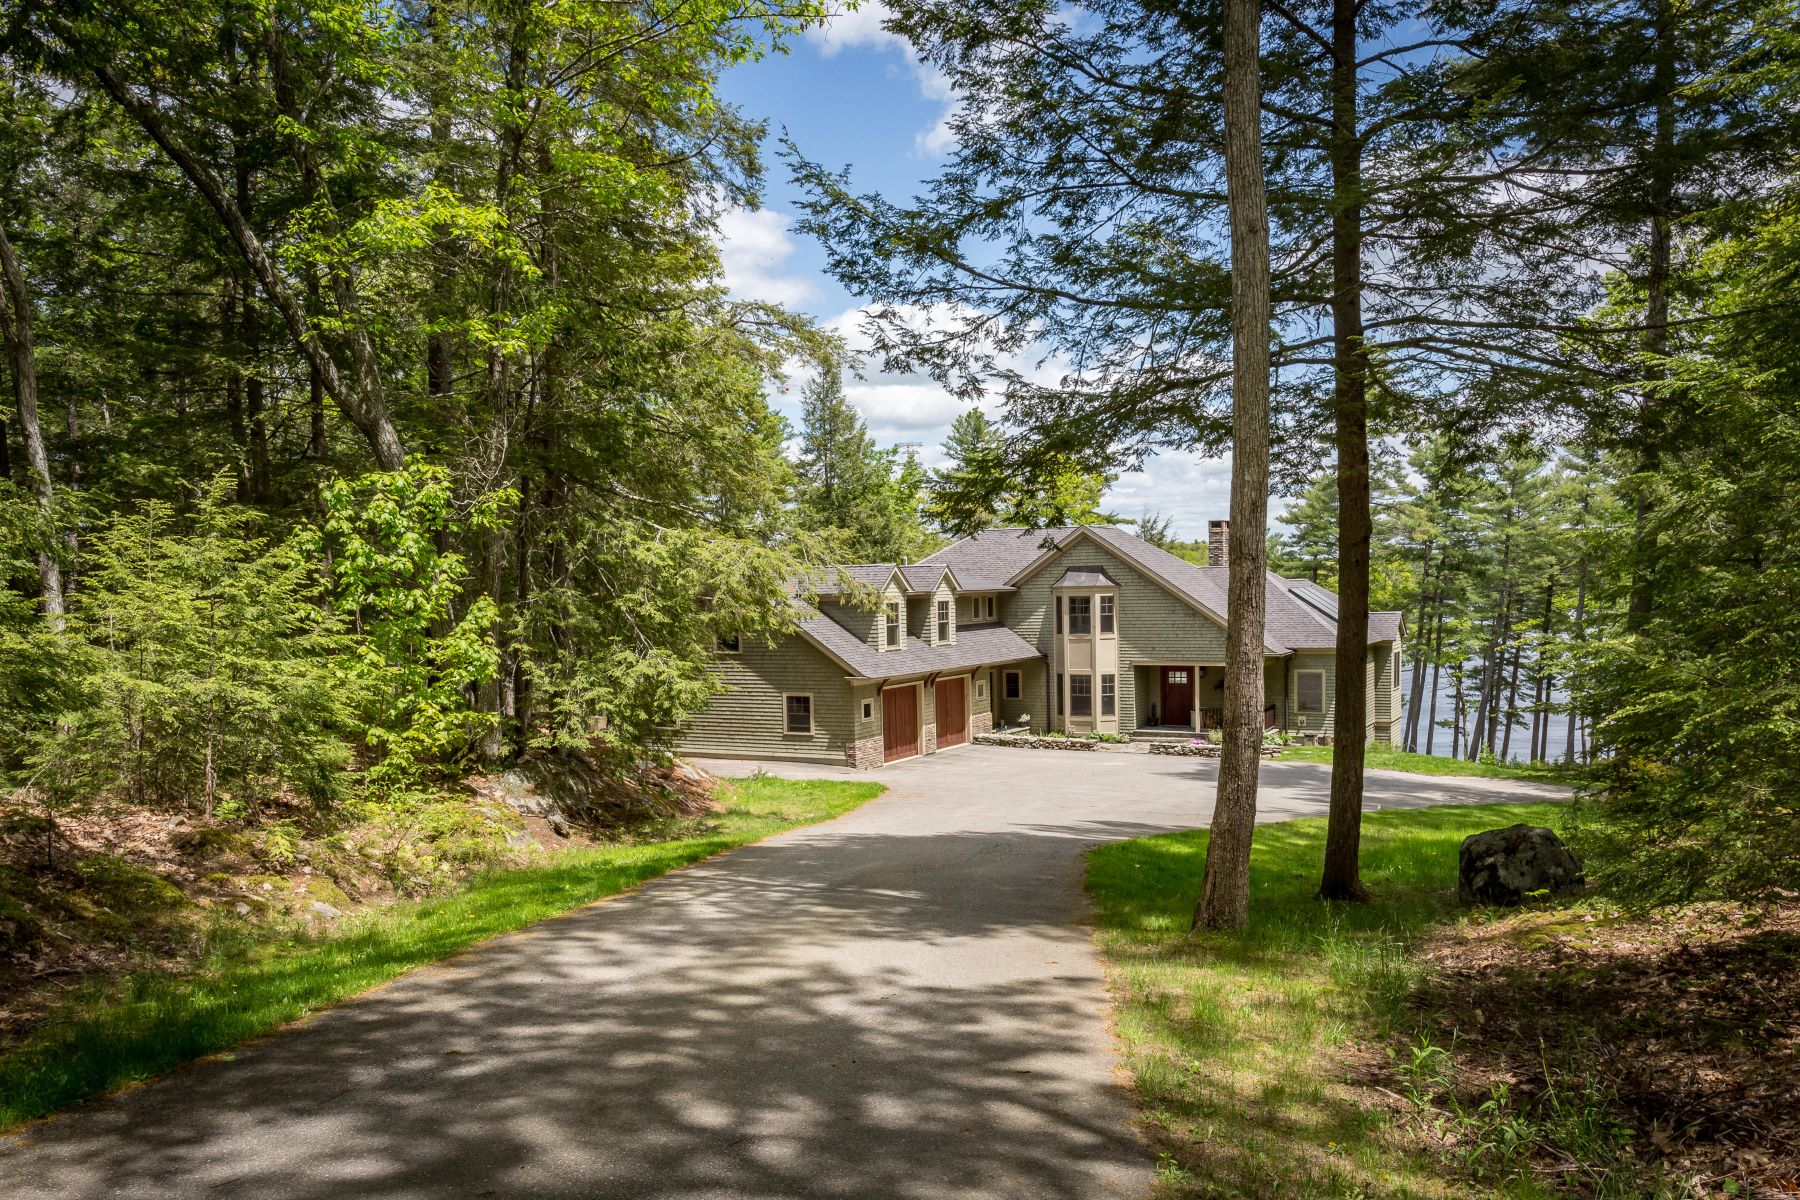 Single Family Homes for Active at 51 West Chops Point Road Bath, Maine 04530 United States